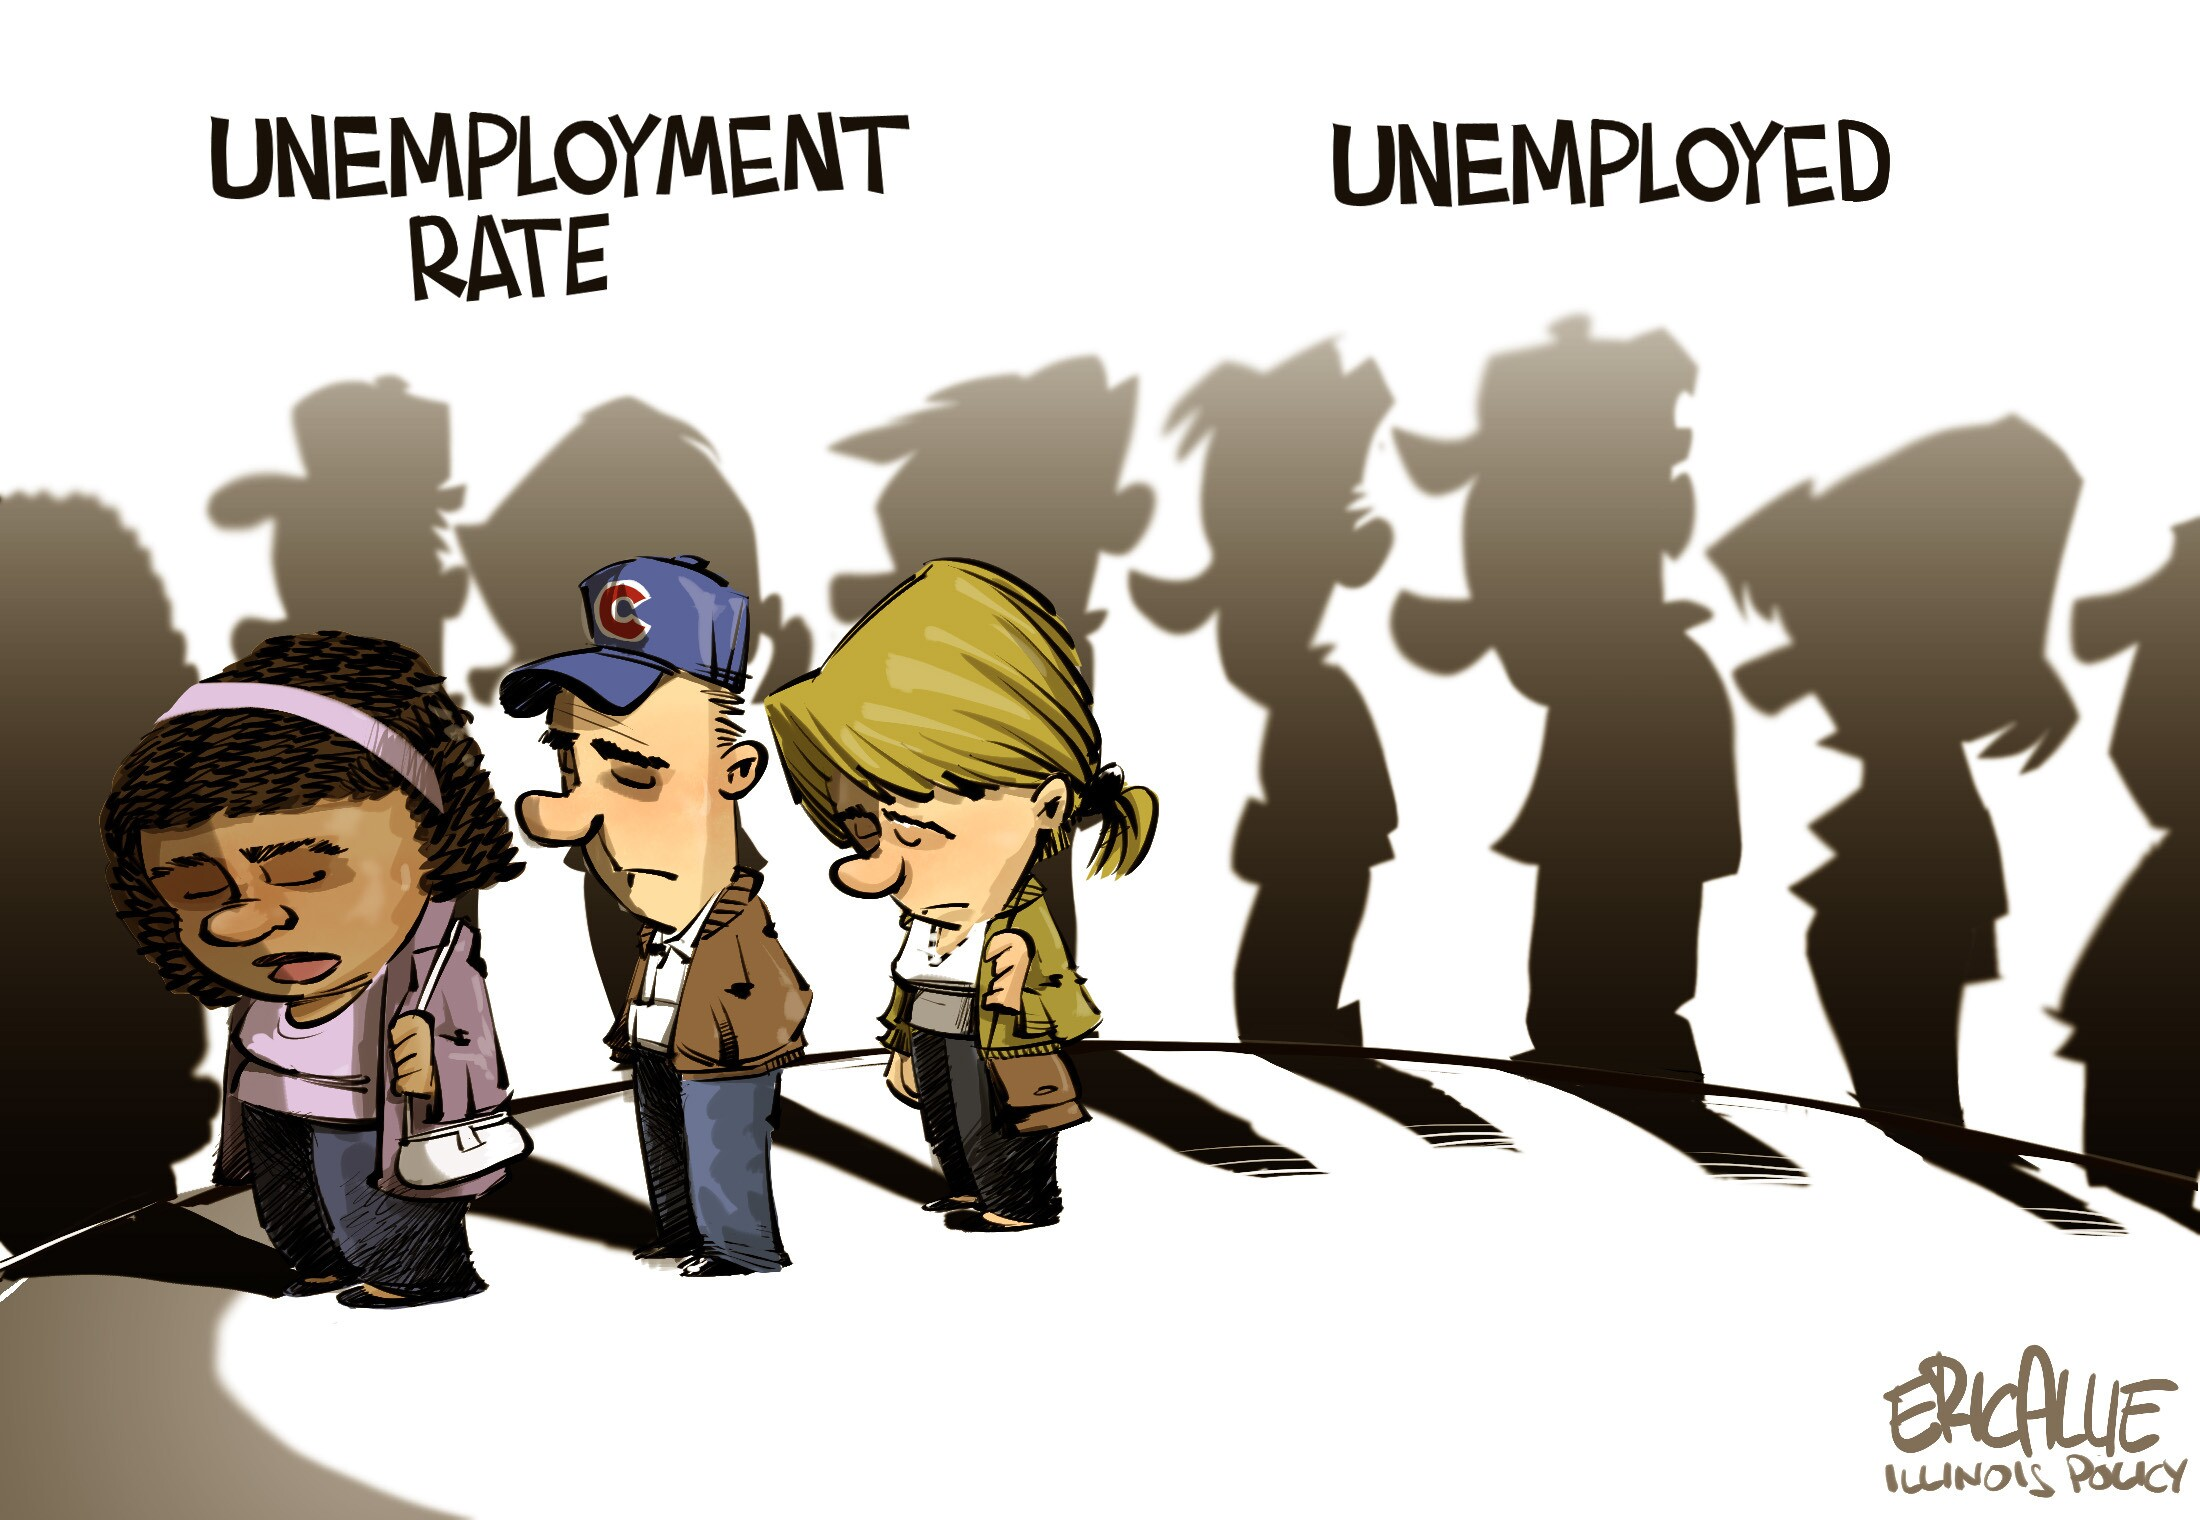 Editorial cartoon: The shadow of unemployment